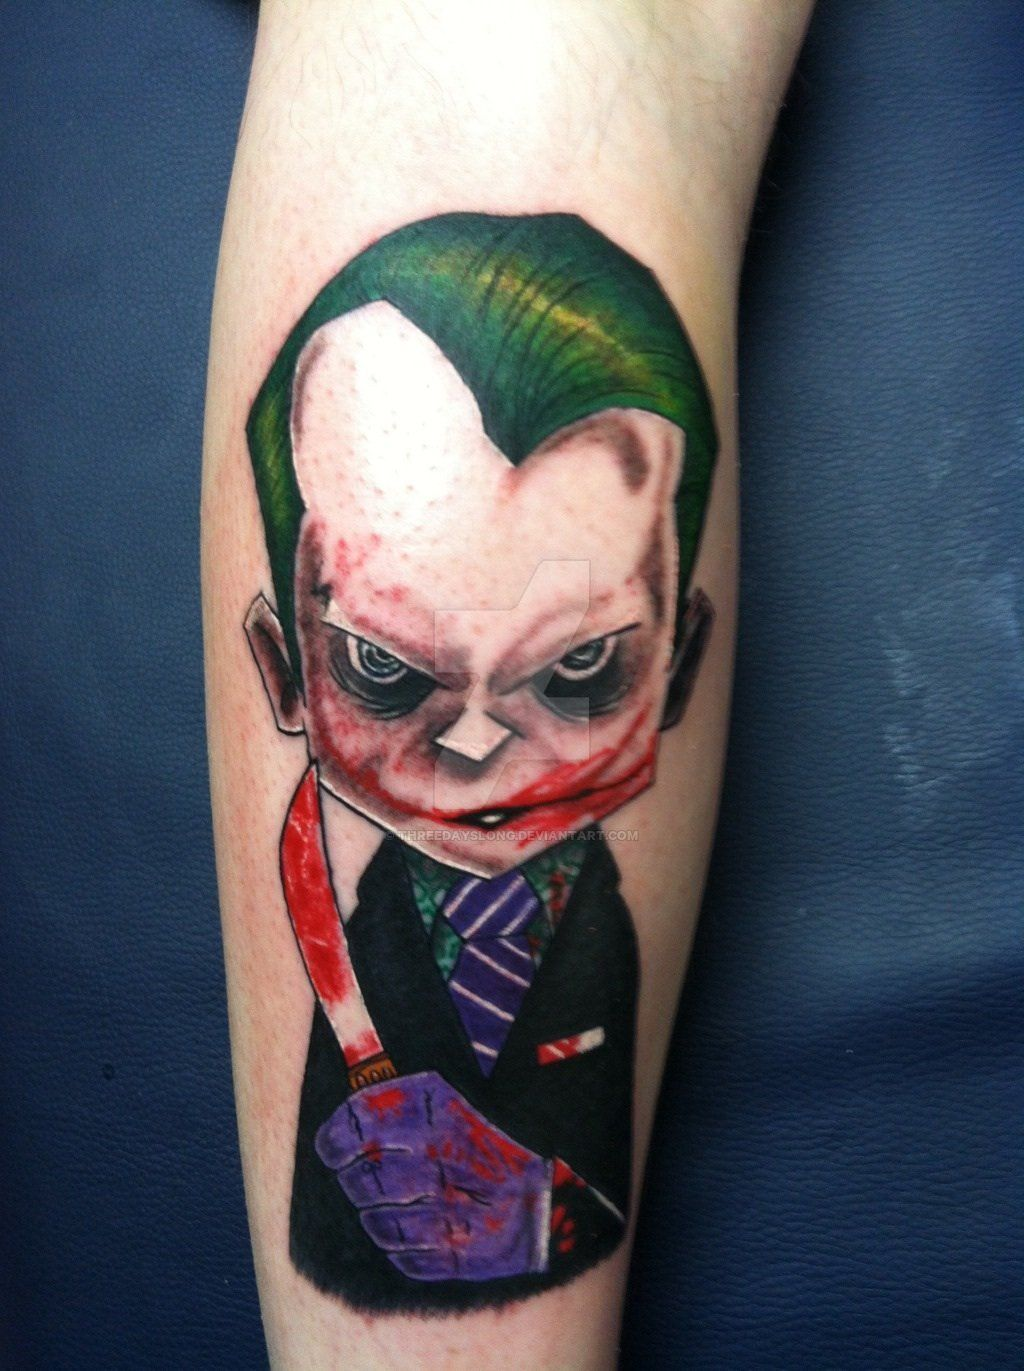 Flaming art tattoo for geek tattoo lovers this kind of batman - Awesome Joker Tattoo With Bloody Knife